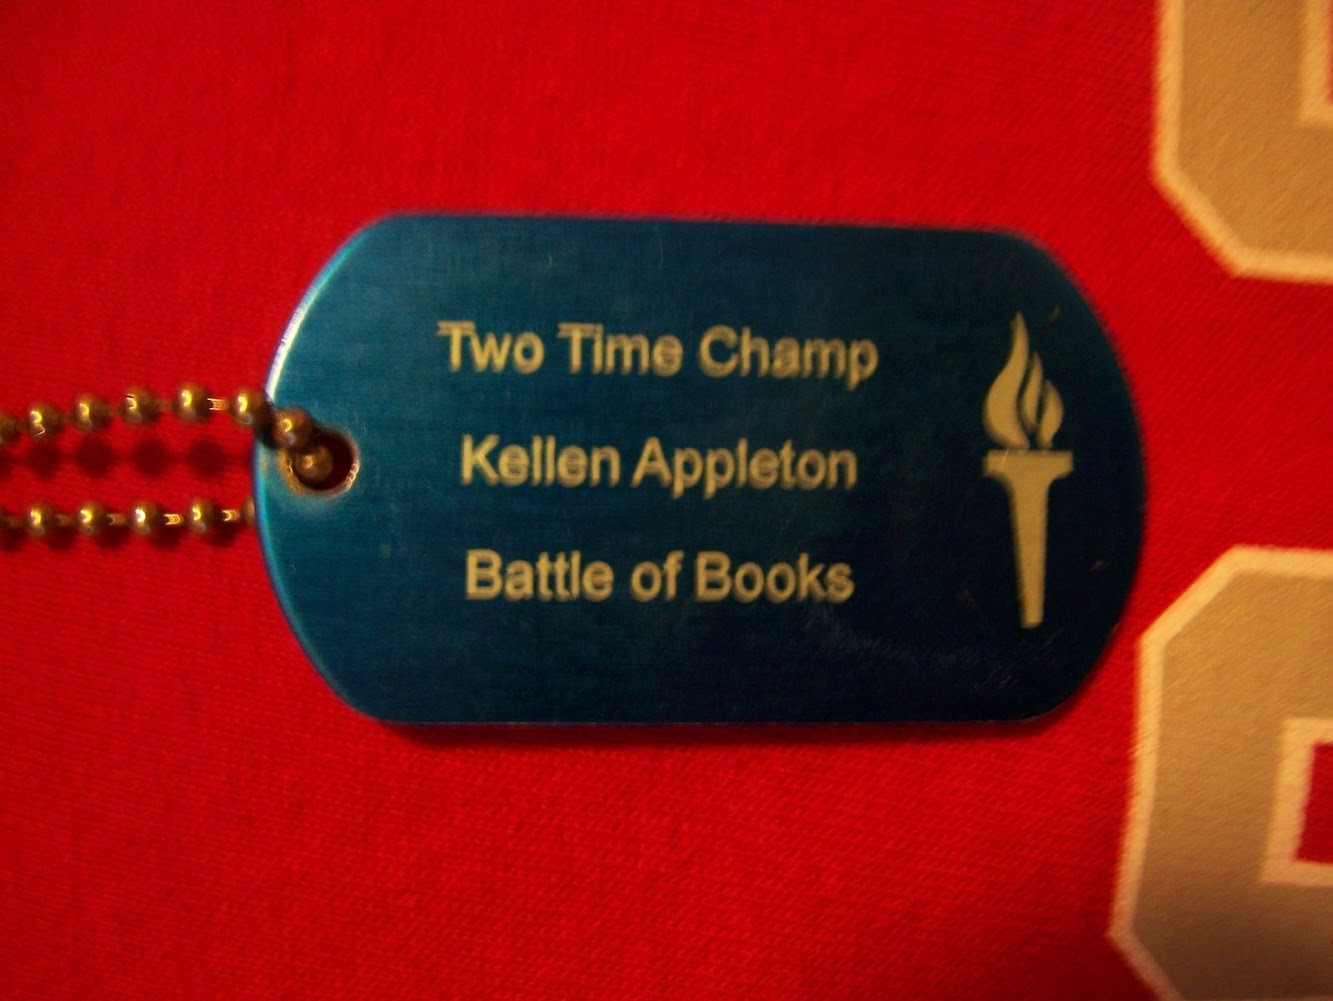 A Dog Tag Reward for Kellen